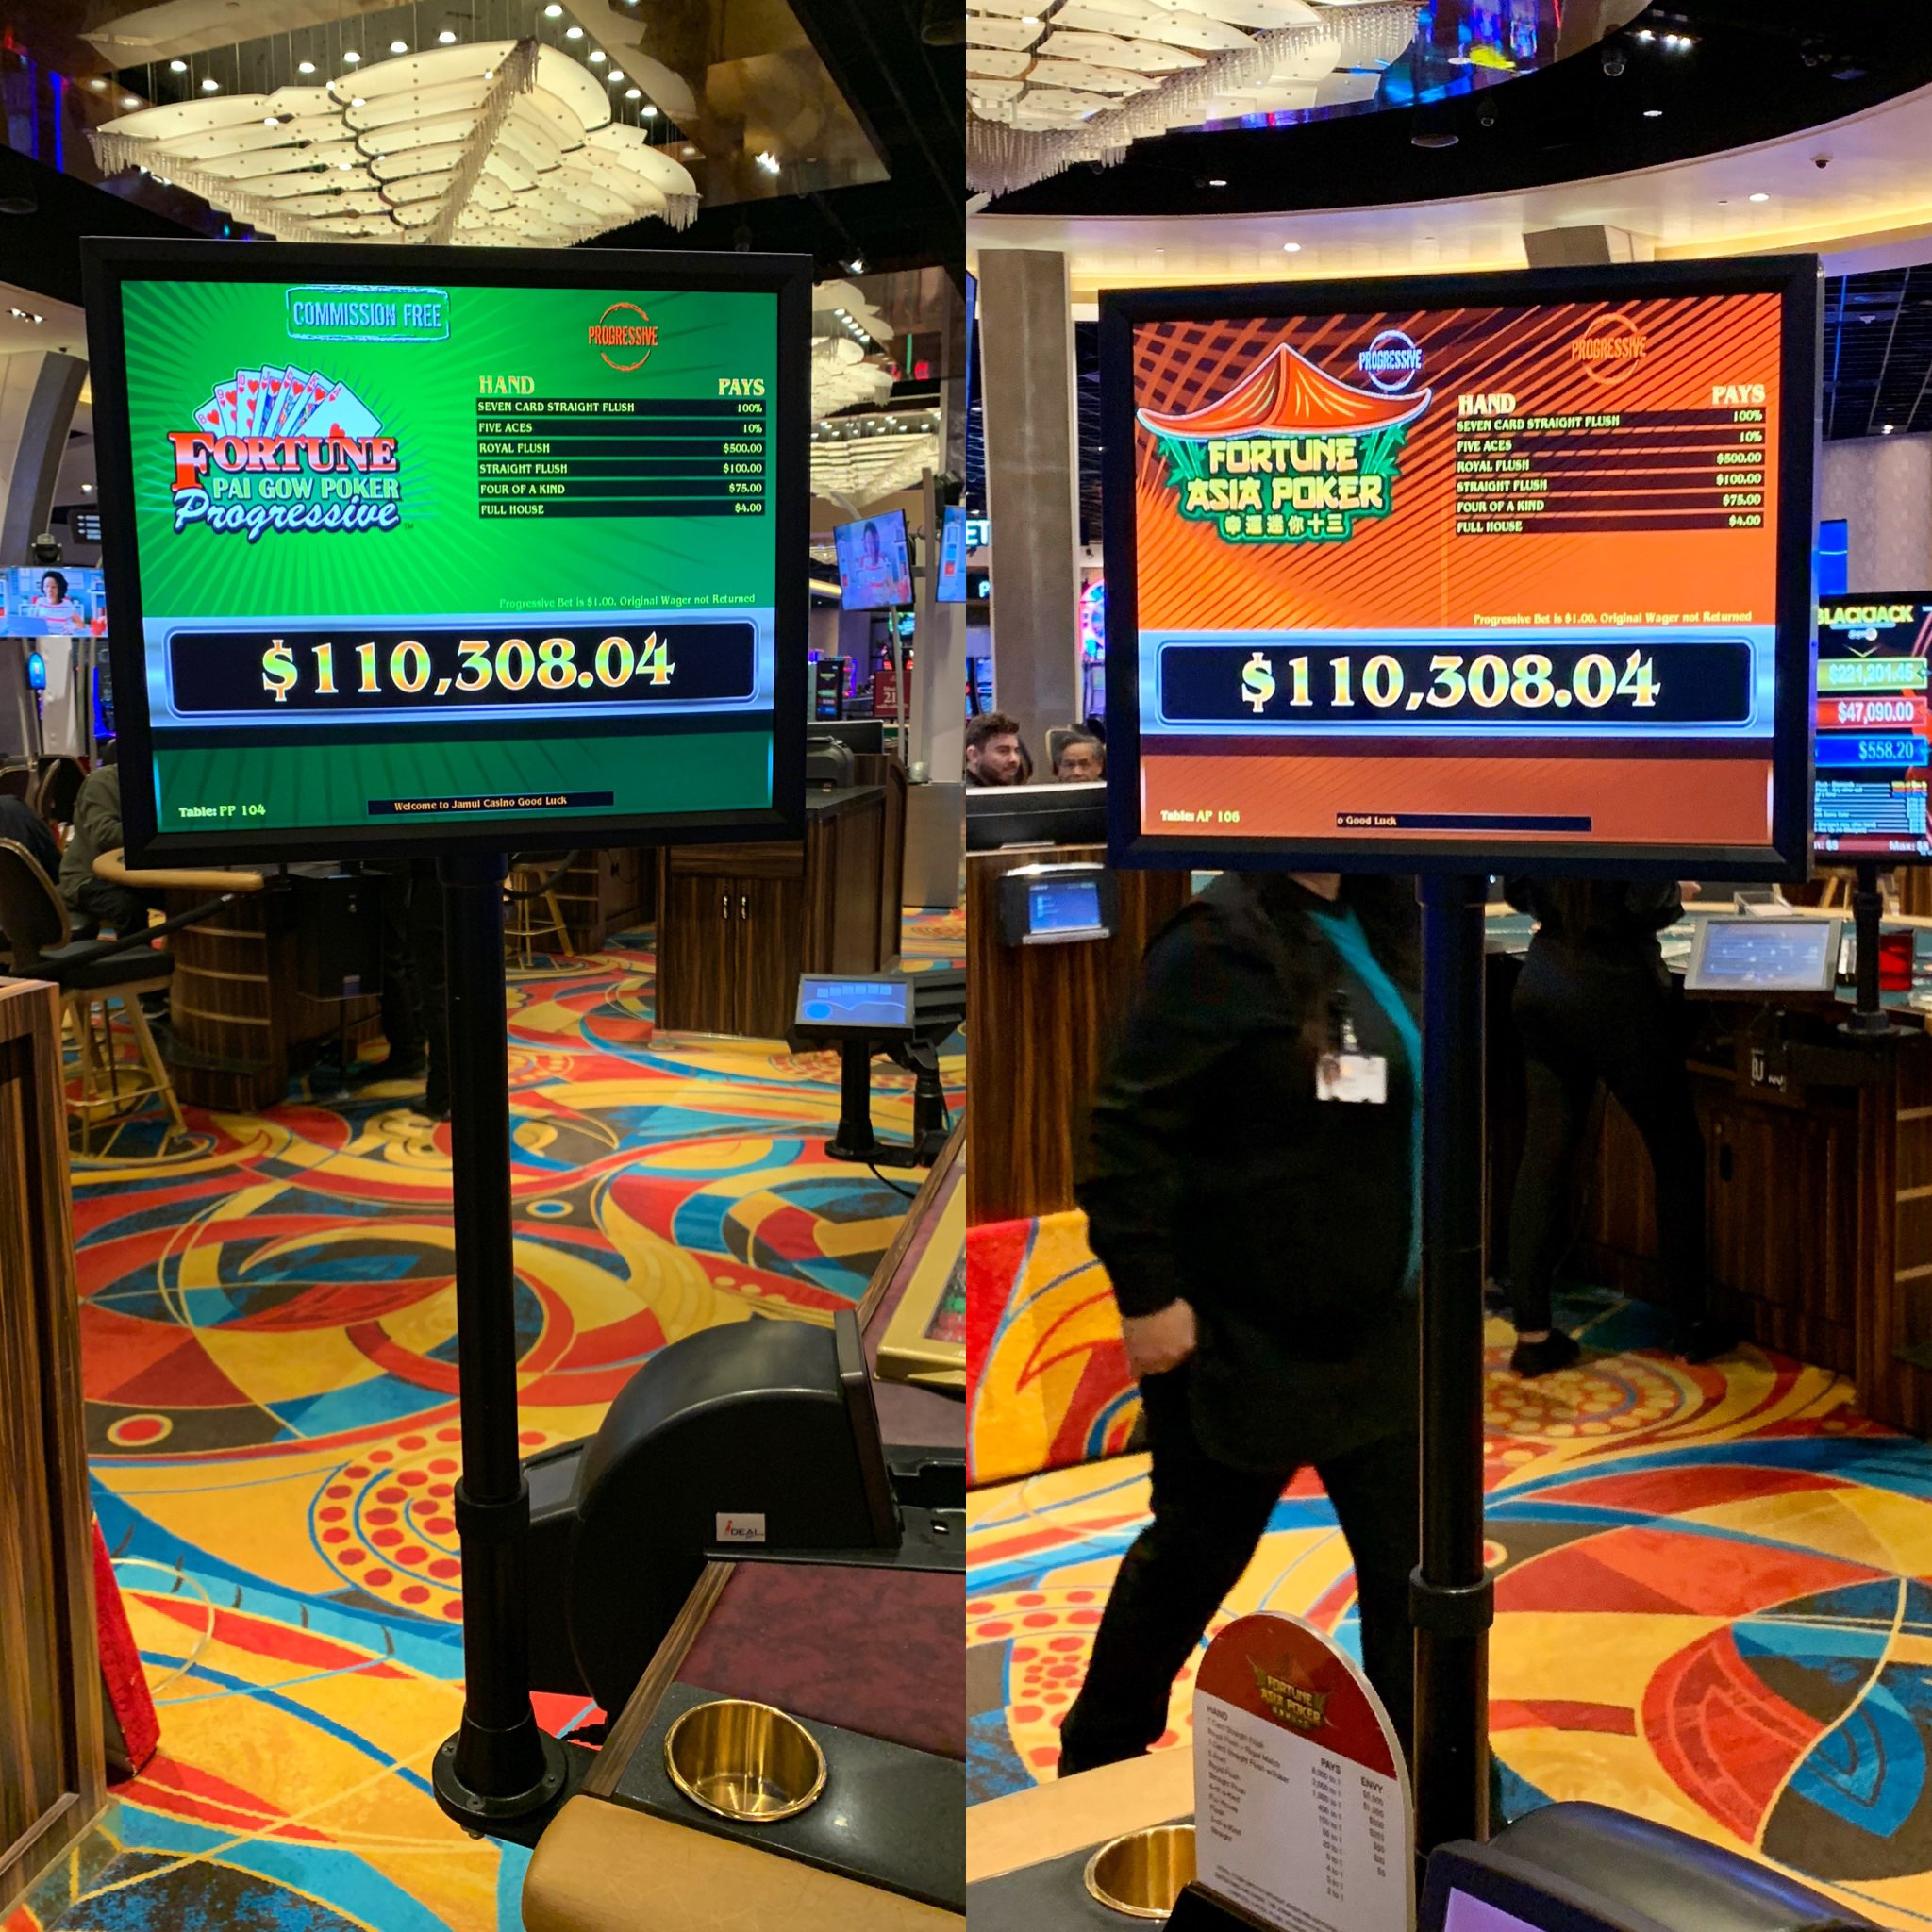 Jamul Casino Sd On Twitter Check Out The Progressives On Fortune Asia Poker And Pai Gow Poker Who S Feeling Lucky Jamulcasinosd Jamulcasino Sandiego Casino Https T Co Ug1ivd0nf6